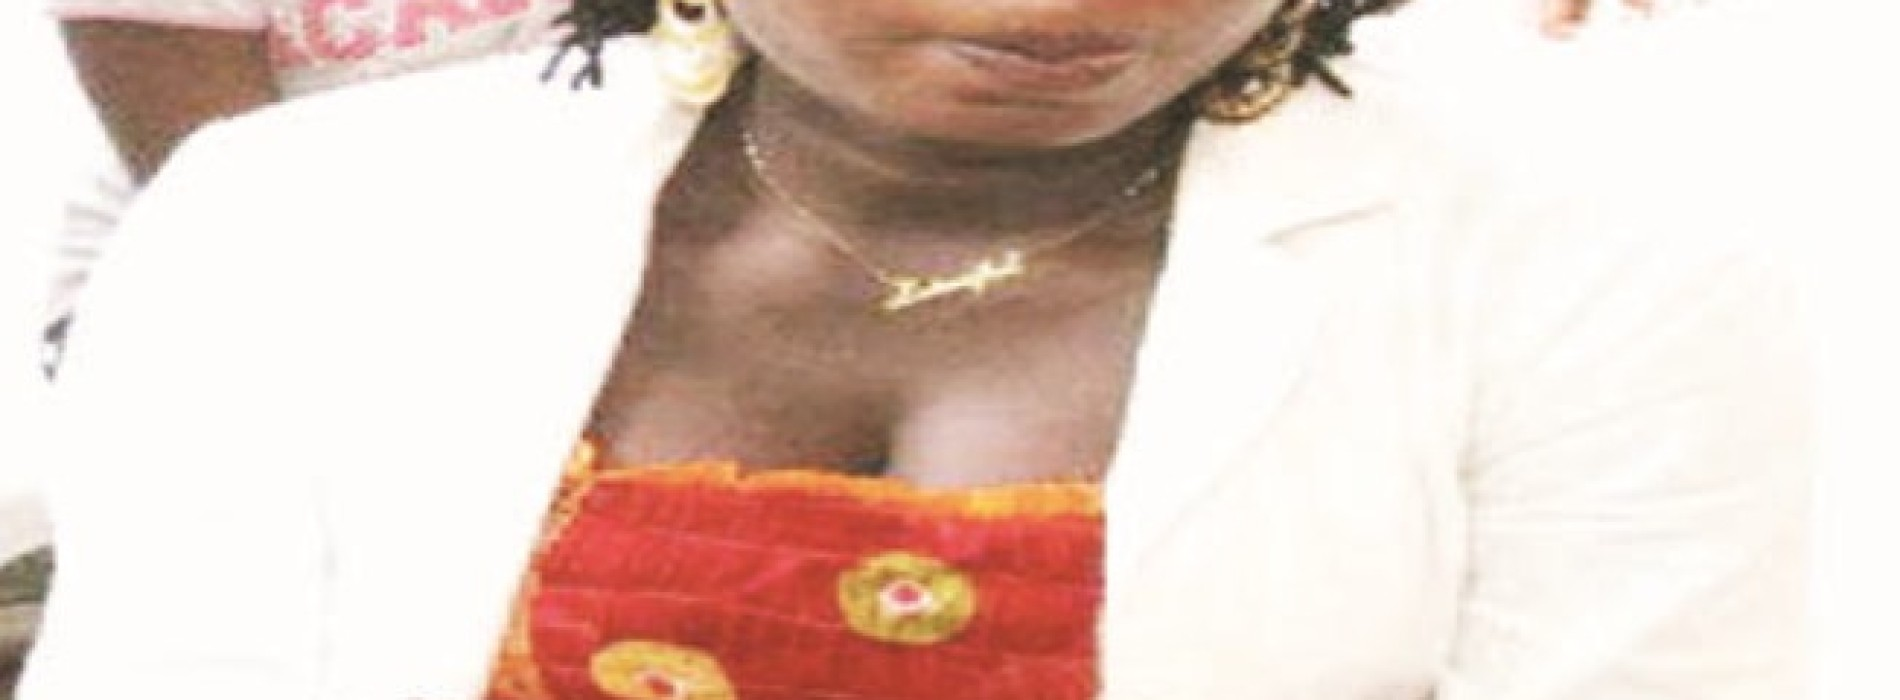 Mrs Shonuga: Another unwarranted death